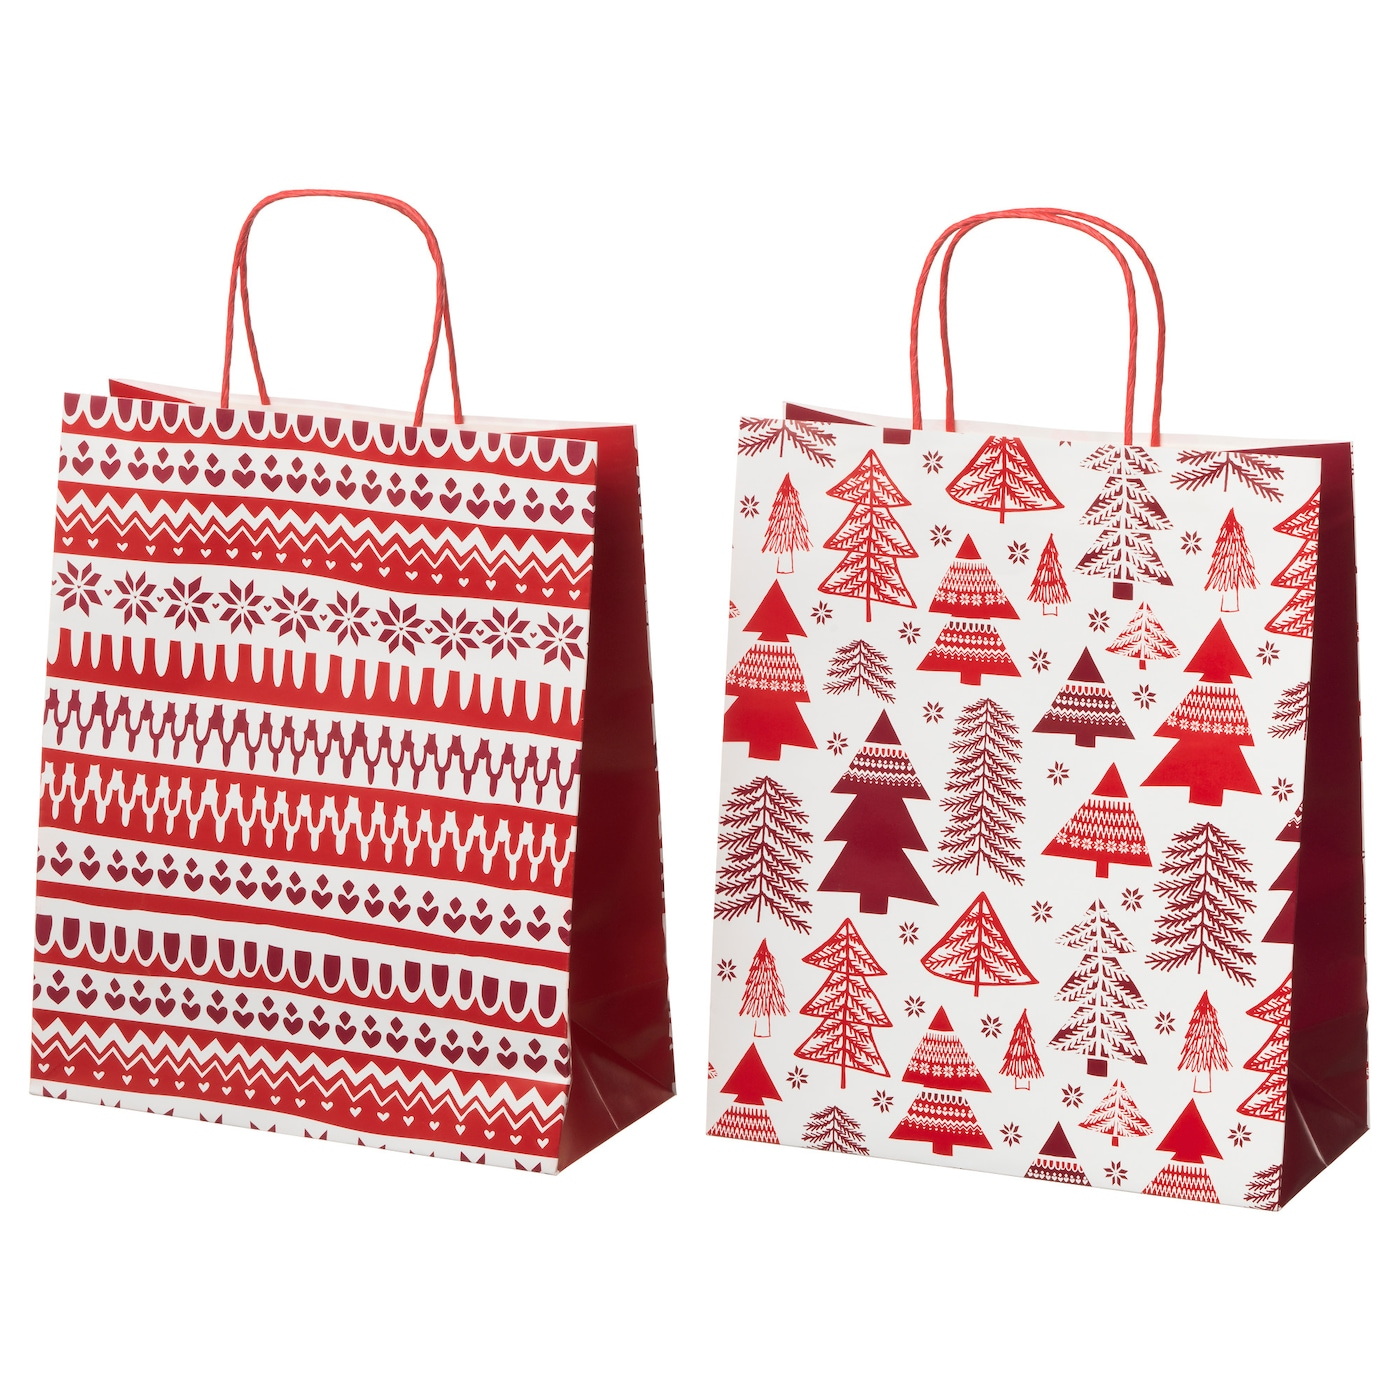 IKEA VINTER 2017 gift bag Can be used instead of gift wrap paper.